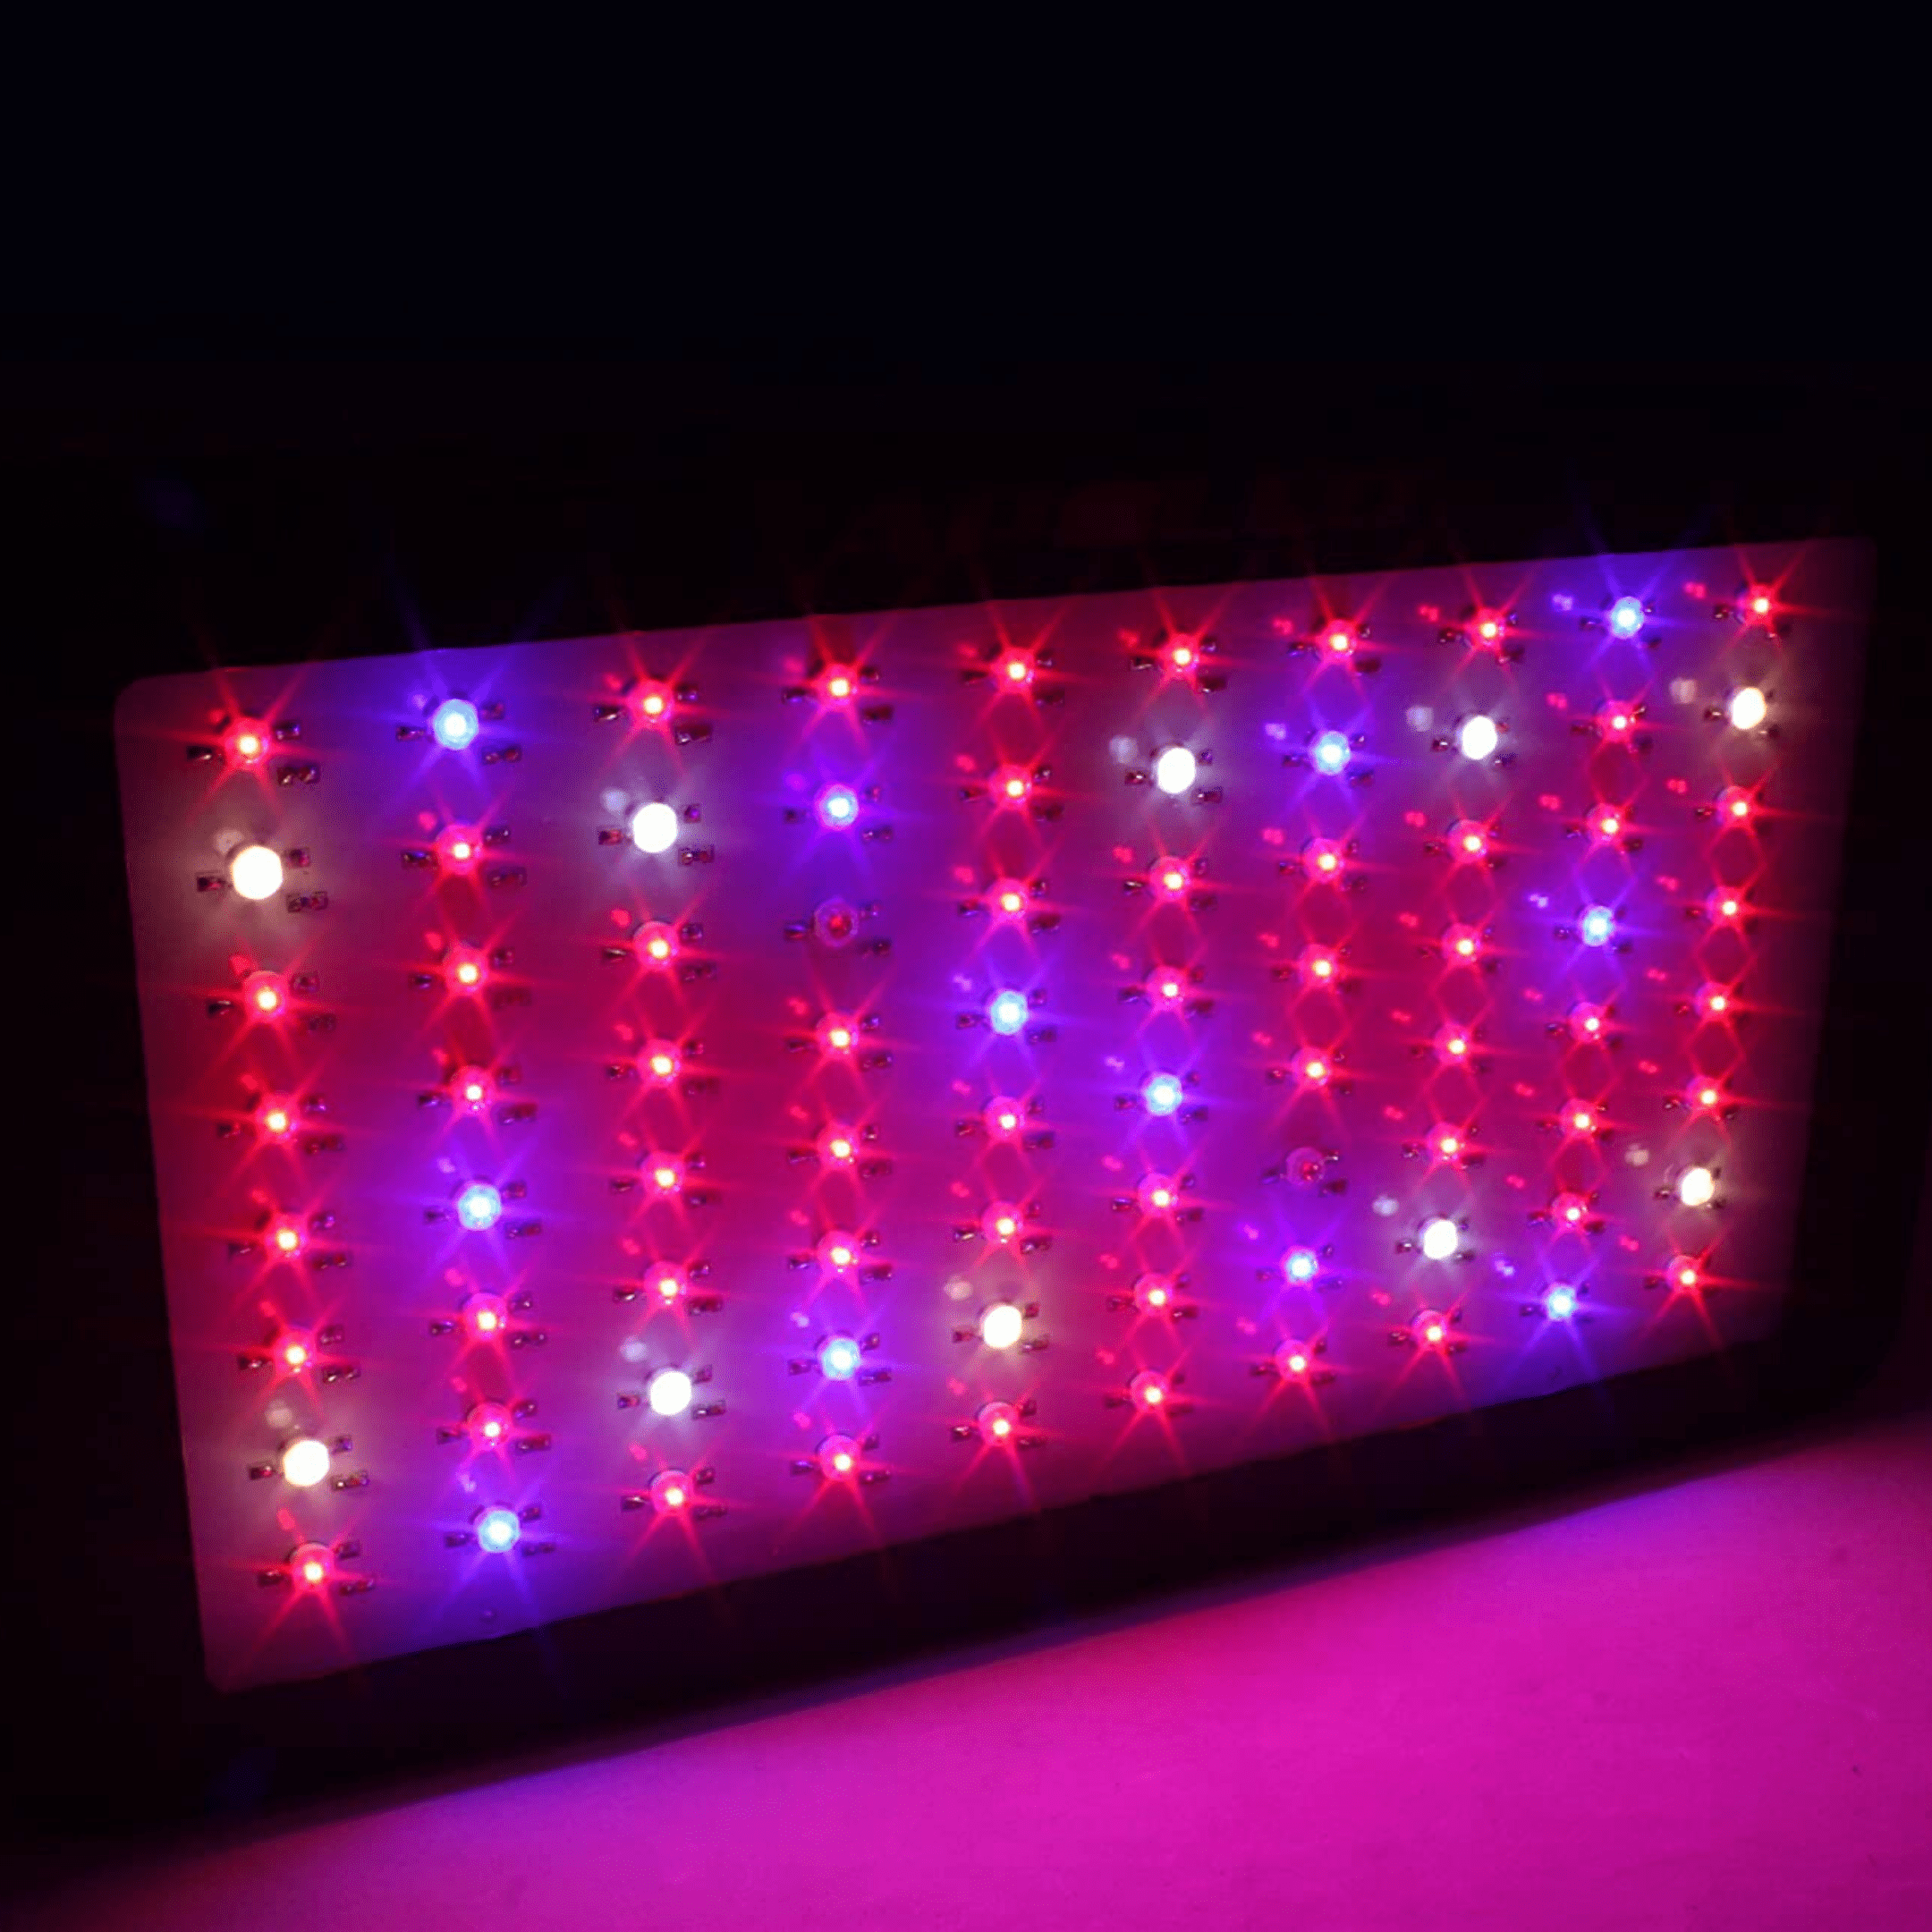 Apollo Horticulture GL80LED Full Spectrum 240W LED Grow Light